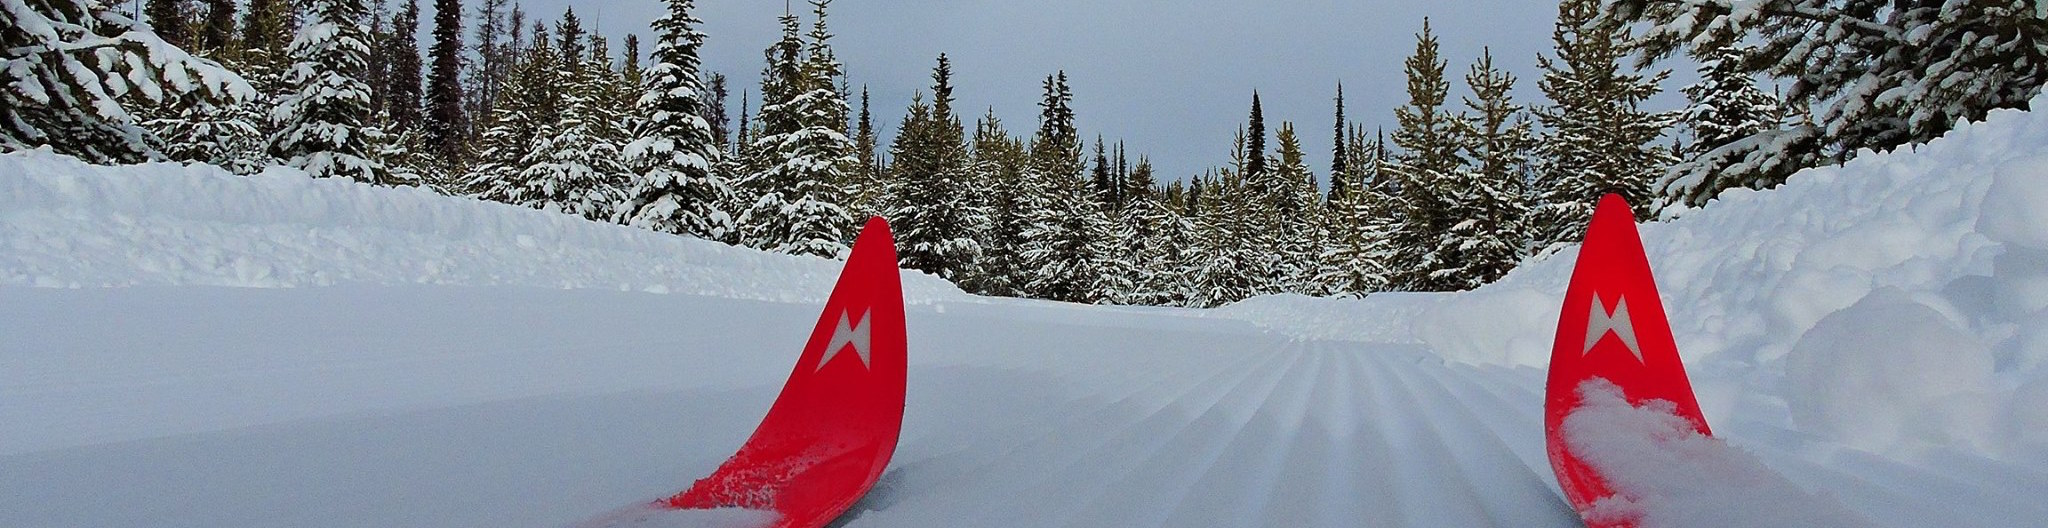 banner image - skis on groomed trail